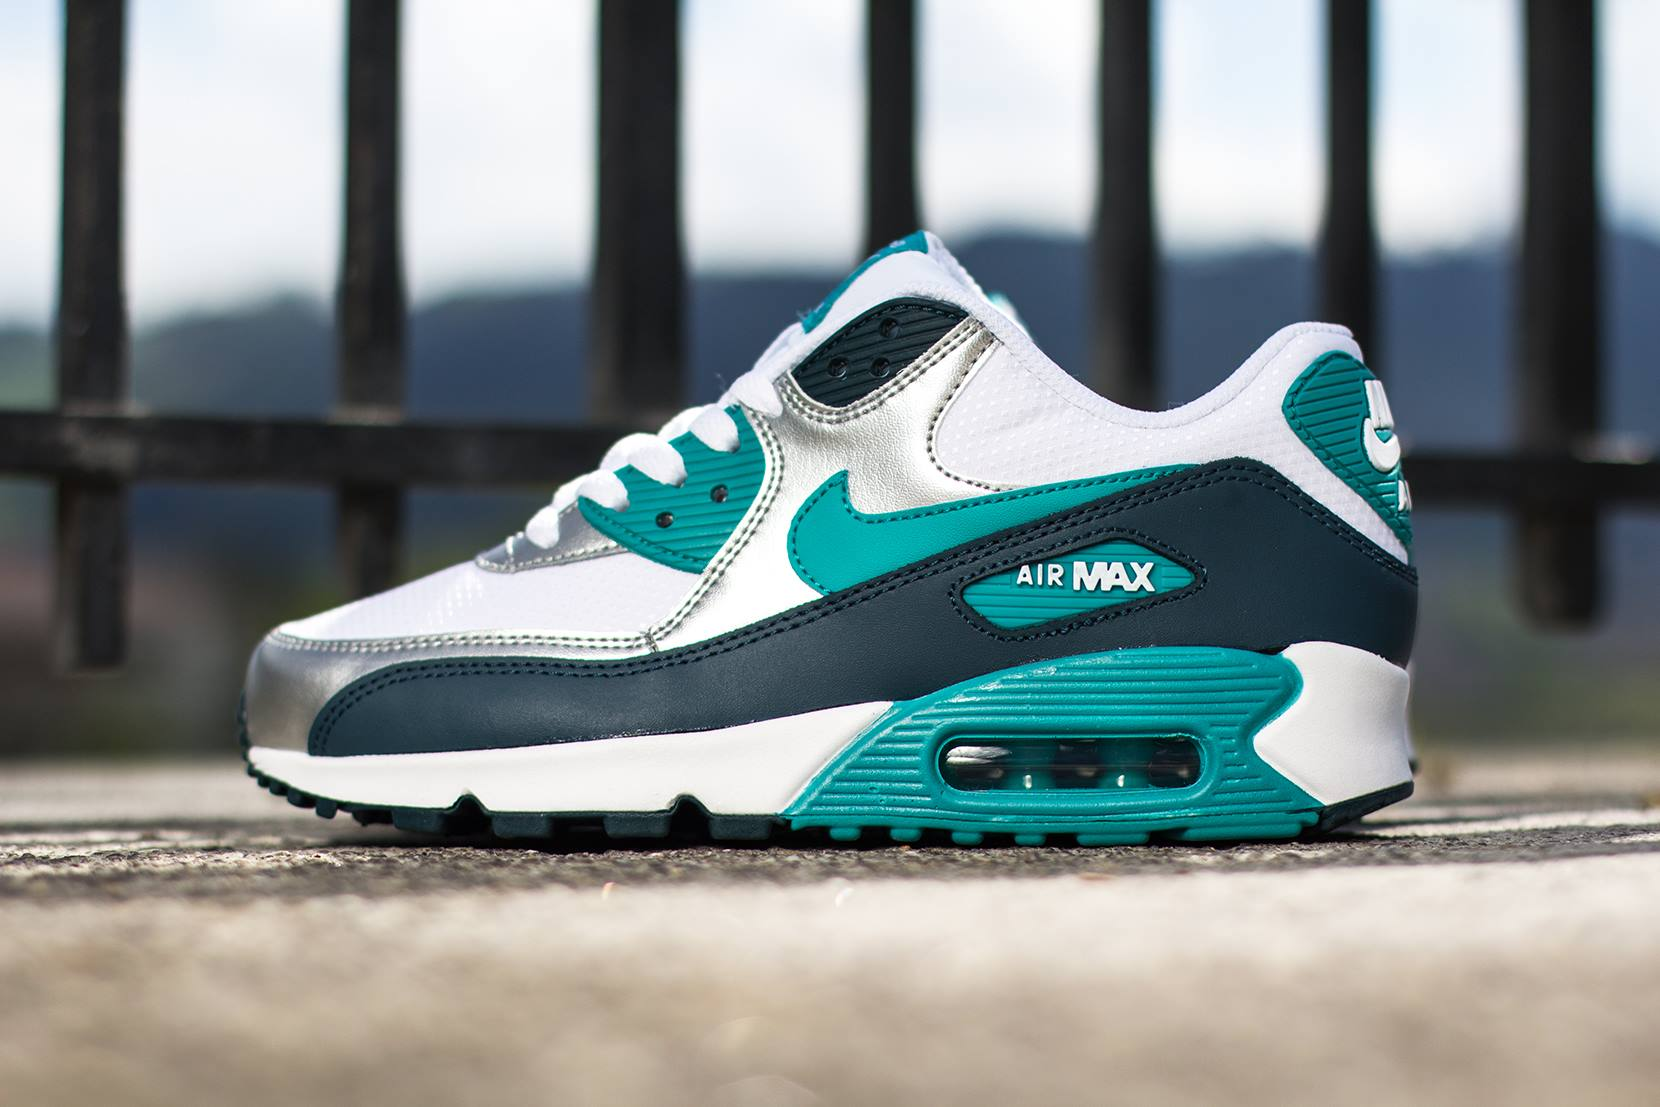 e1a616f237e4 ... purchase nike womens air max 90 white turbo green nightshade  sneakernews 052a5 77105